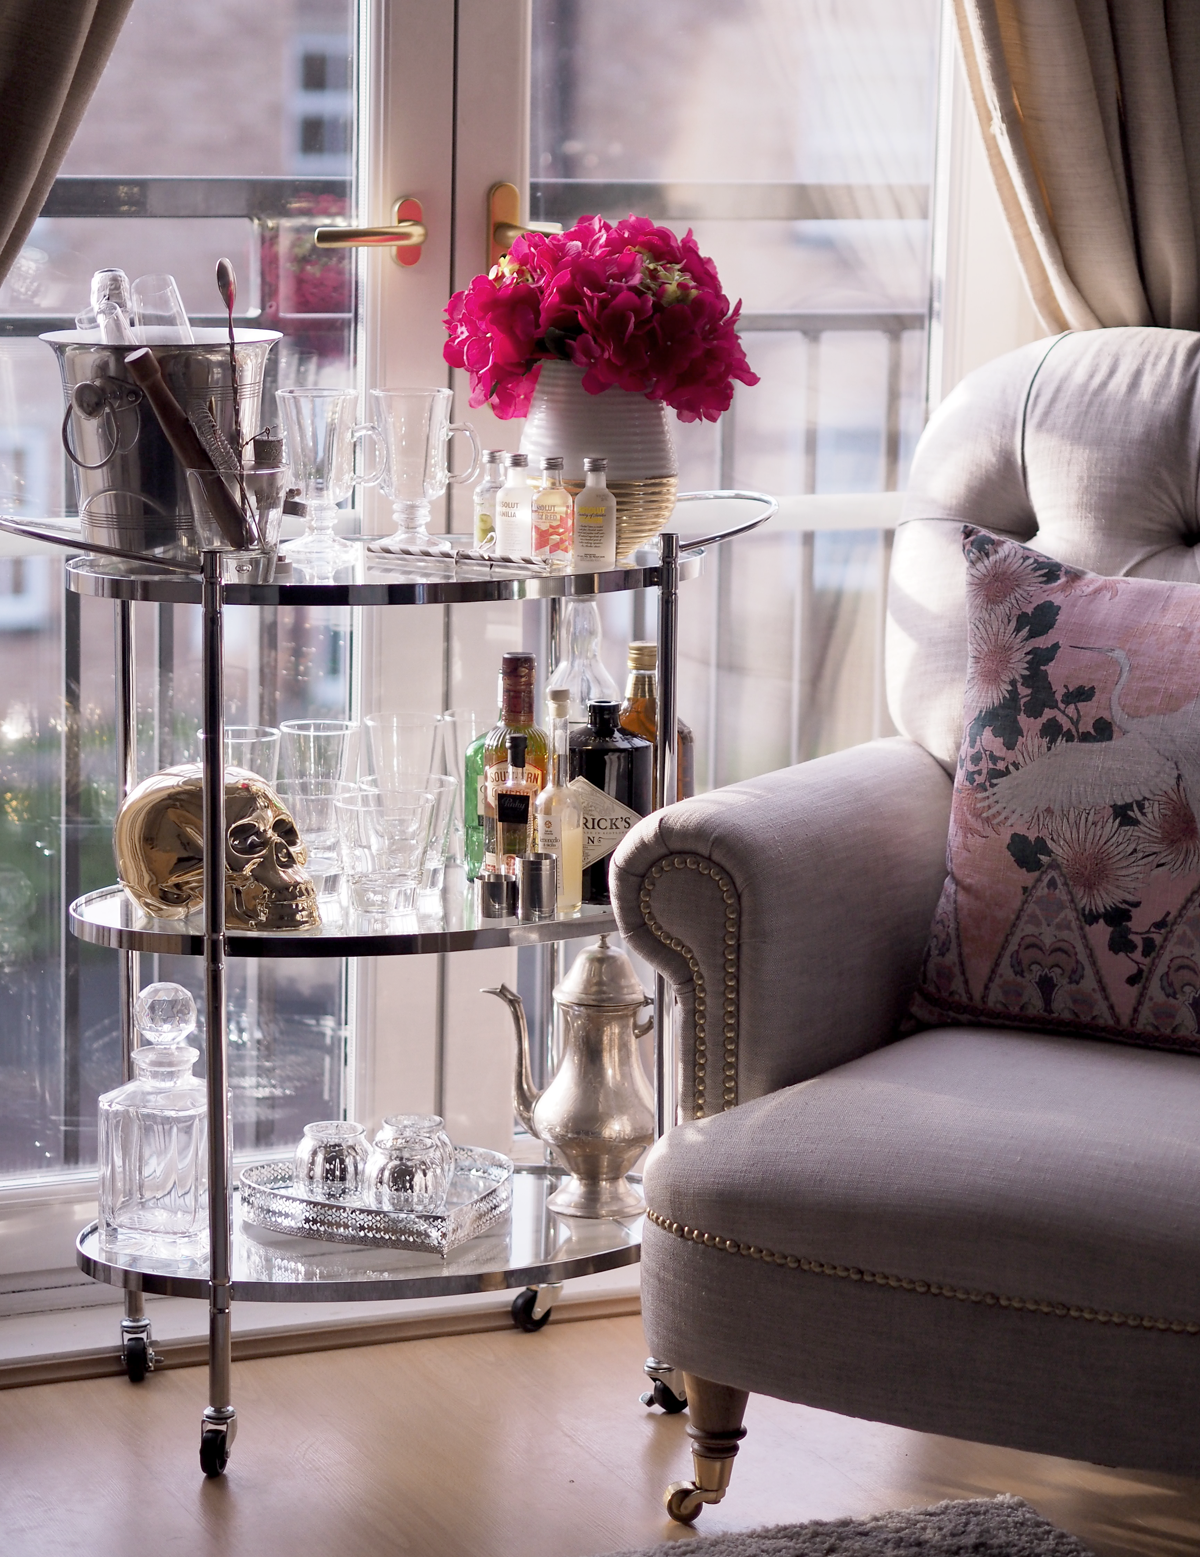 Apartment Number 4 takes a look a how to style a bar cart, highlighting the five essentials every drinks trolley needs.